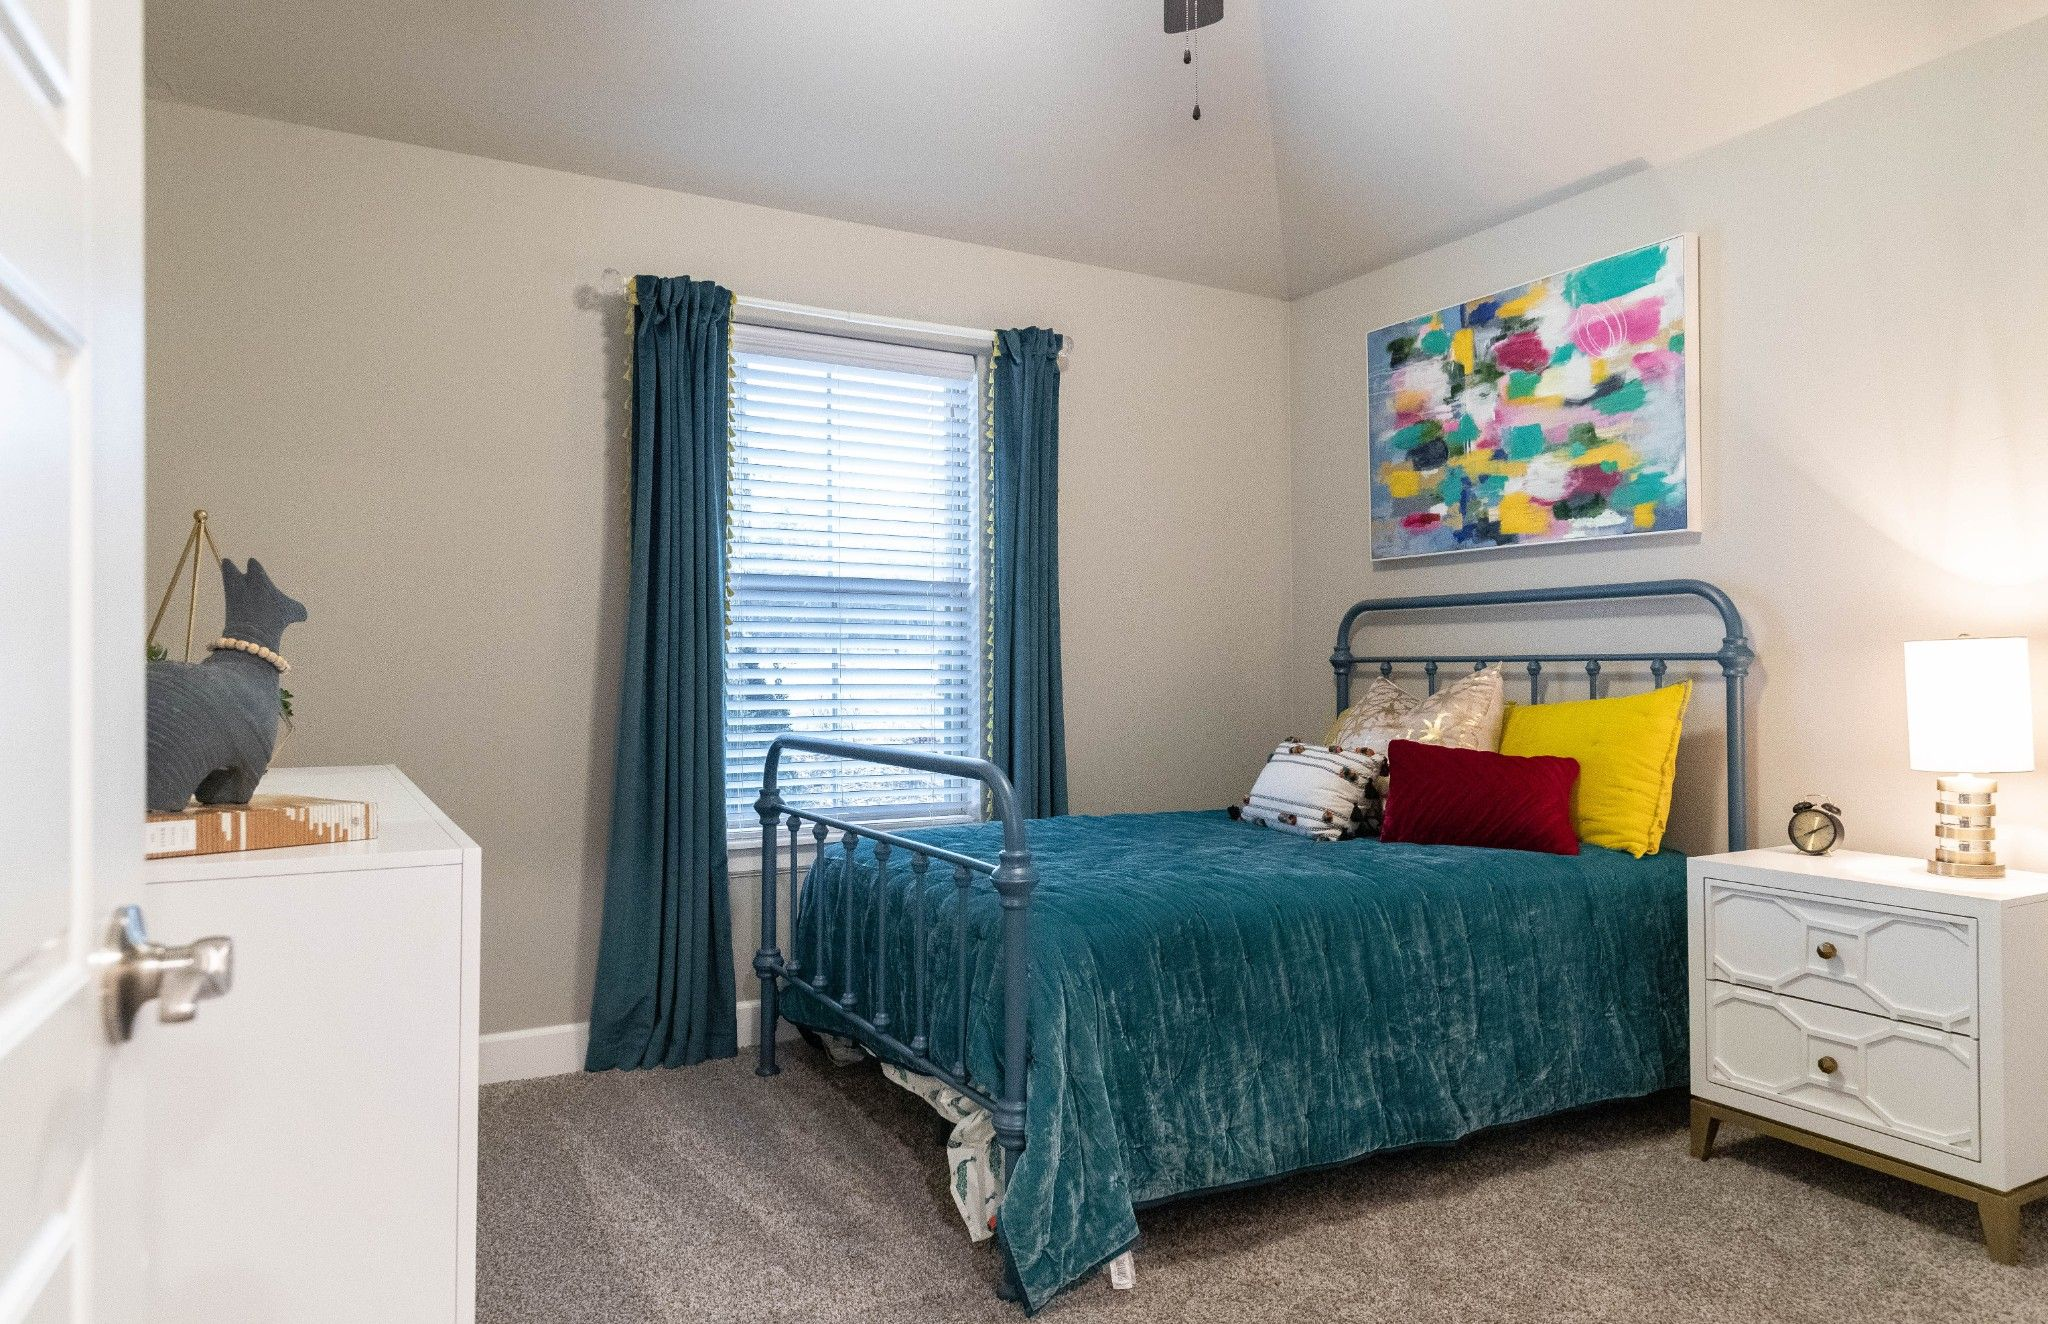 Bedroom featured in the Poppey Bonus Room By Homes By Taber in Oklahoma City, OK